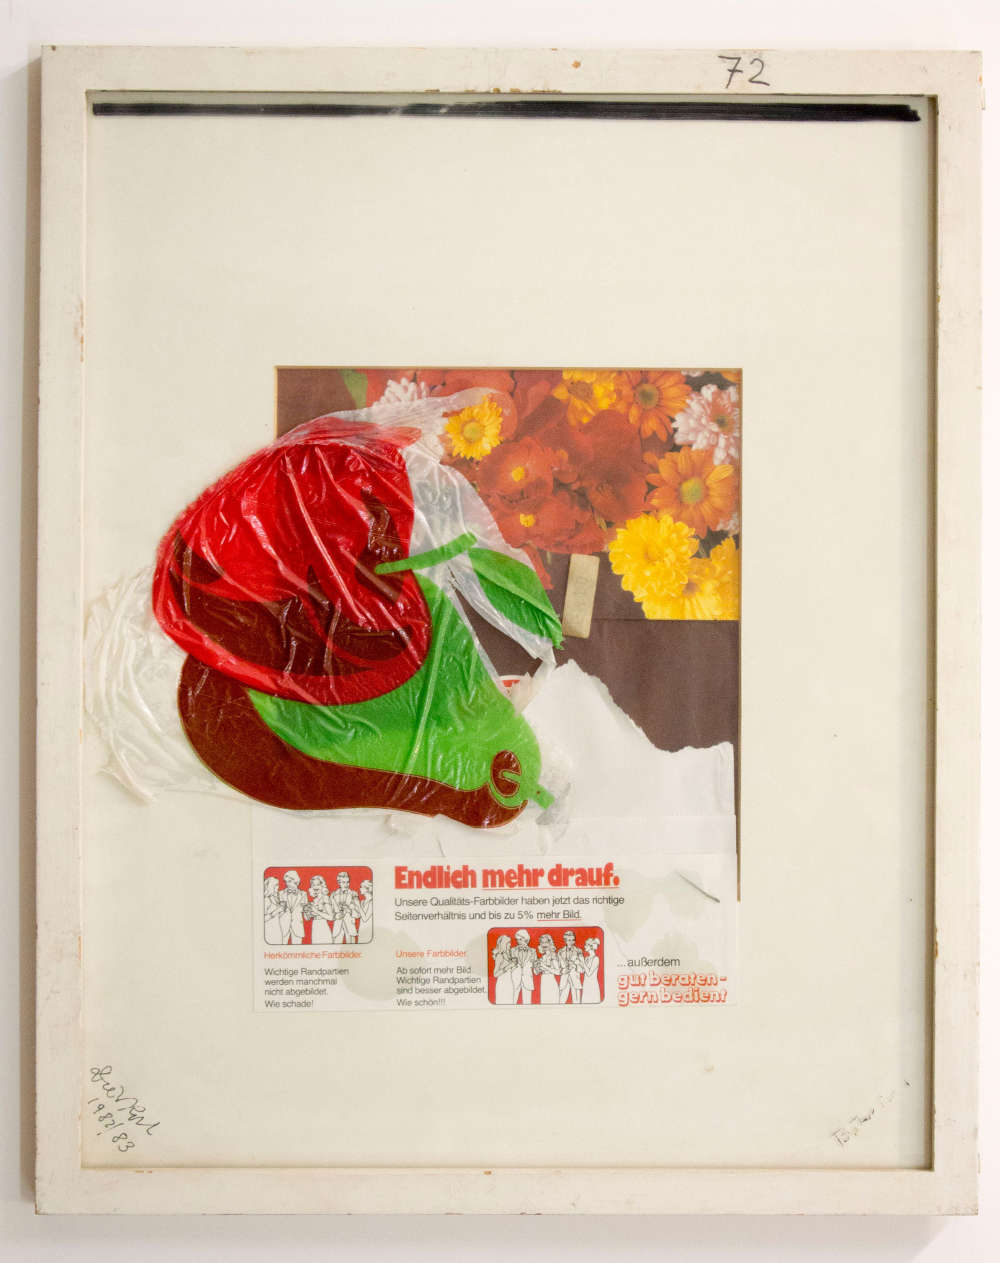 Dieter Roth, Stilleben mit Apfel (Still life with Apple) (with Björn Roth), 1982-1983. Printed plastic film and markers on glass on collage (prints) in and on Passepartout, in wooden frame 52.5 x 42.4 x 2 cm / 20 5/8 x 16 3/4 x  3/4 in (framed) © Dieter Roth Estate. Courtesy the Estate and Hauser & Wirth